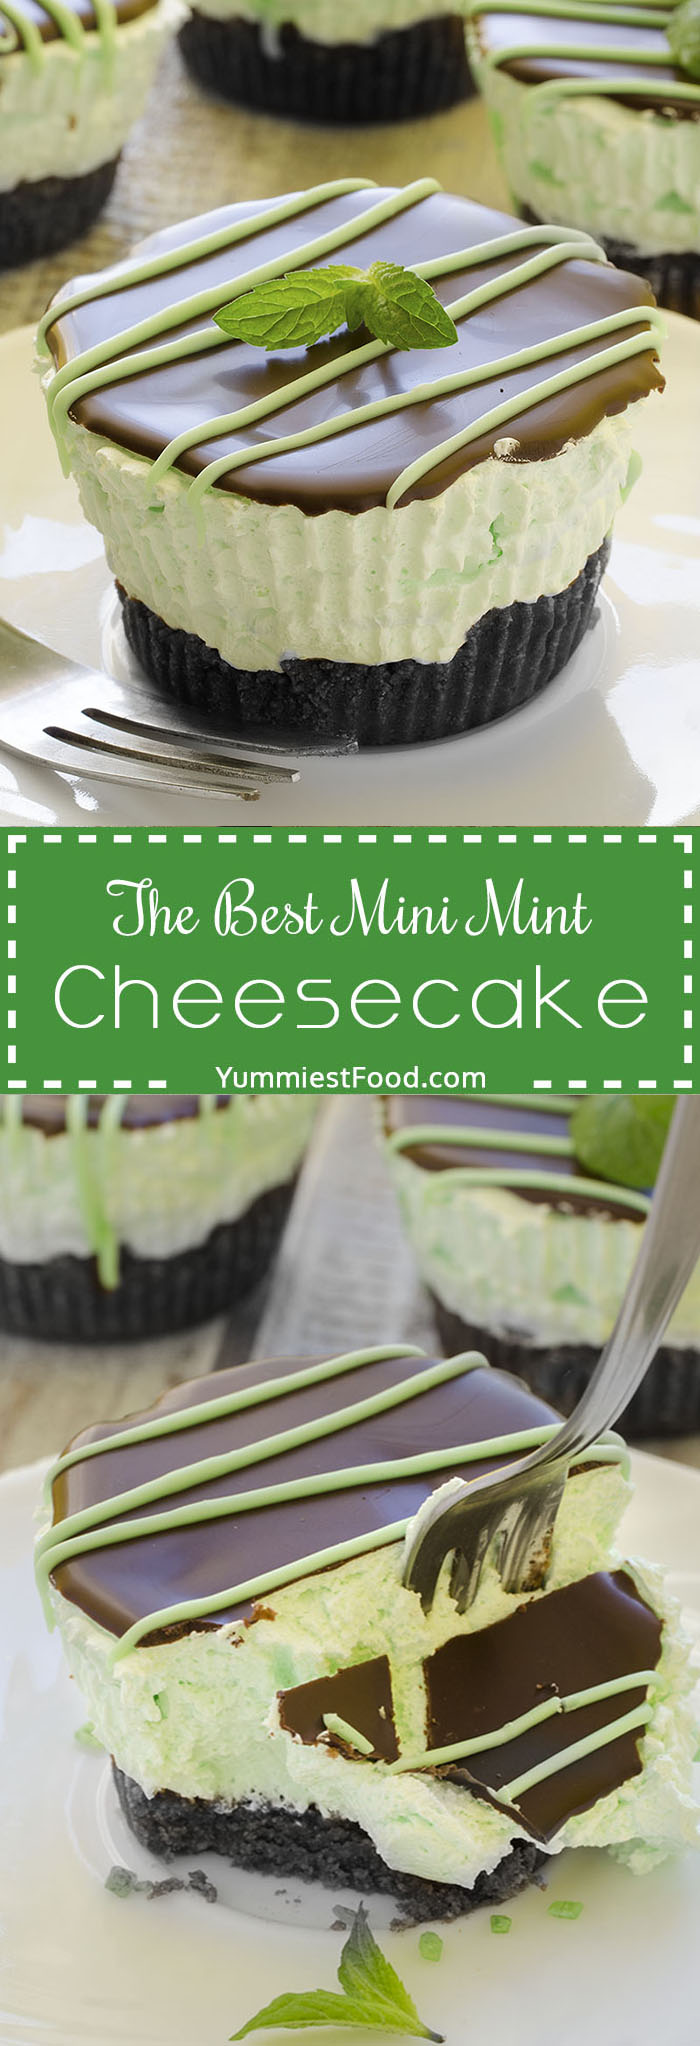 The Best Mini Mint Cheesecake with an Oreo crust and only a few ingredients